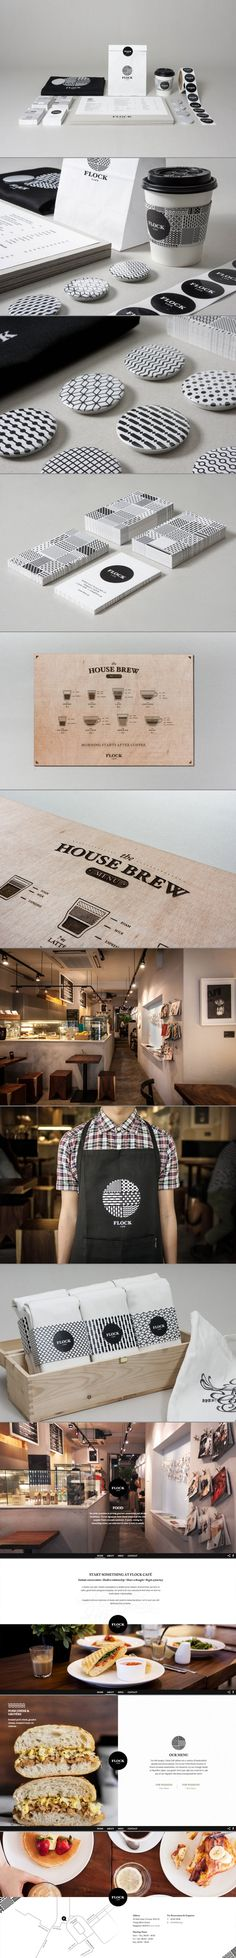 Flock Café by Kilo Studio, via Behance